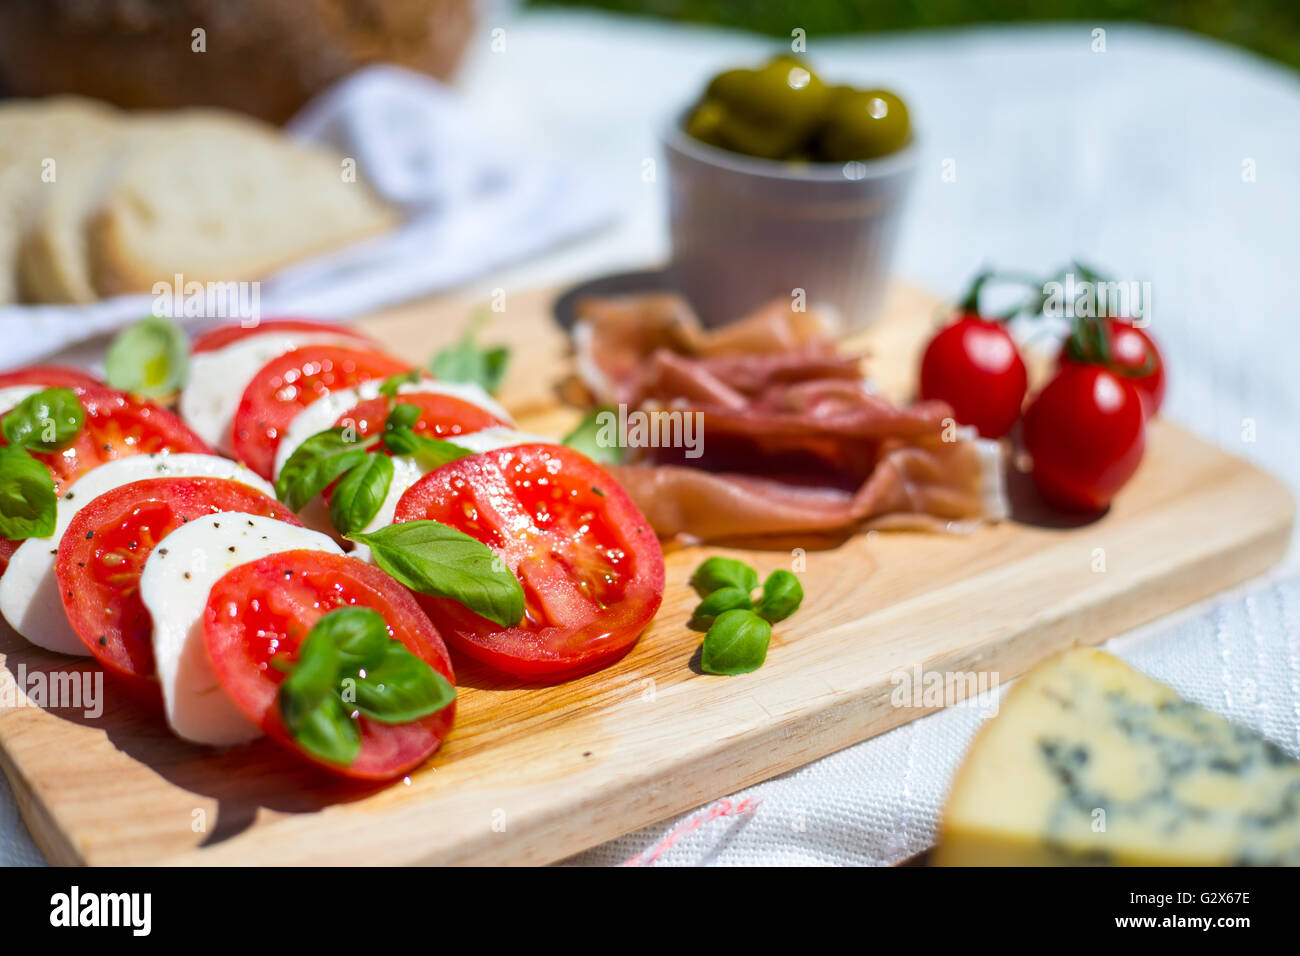 A picnic of tomato and mozzarella salad, parma ham, strawberries, olives and espresso pot in a park - Stock Image